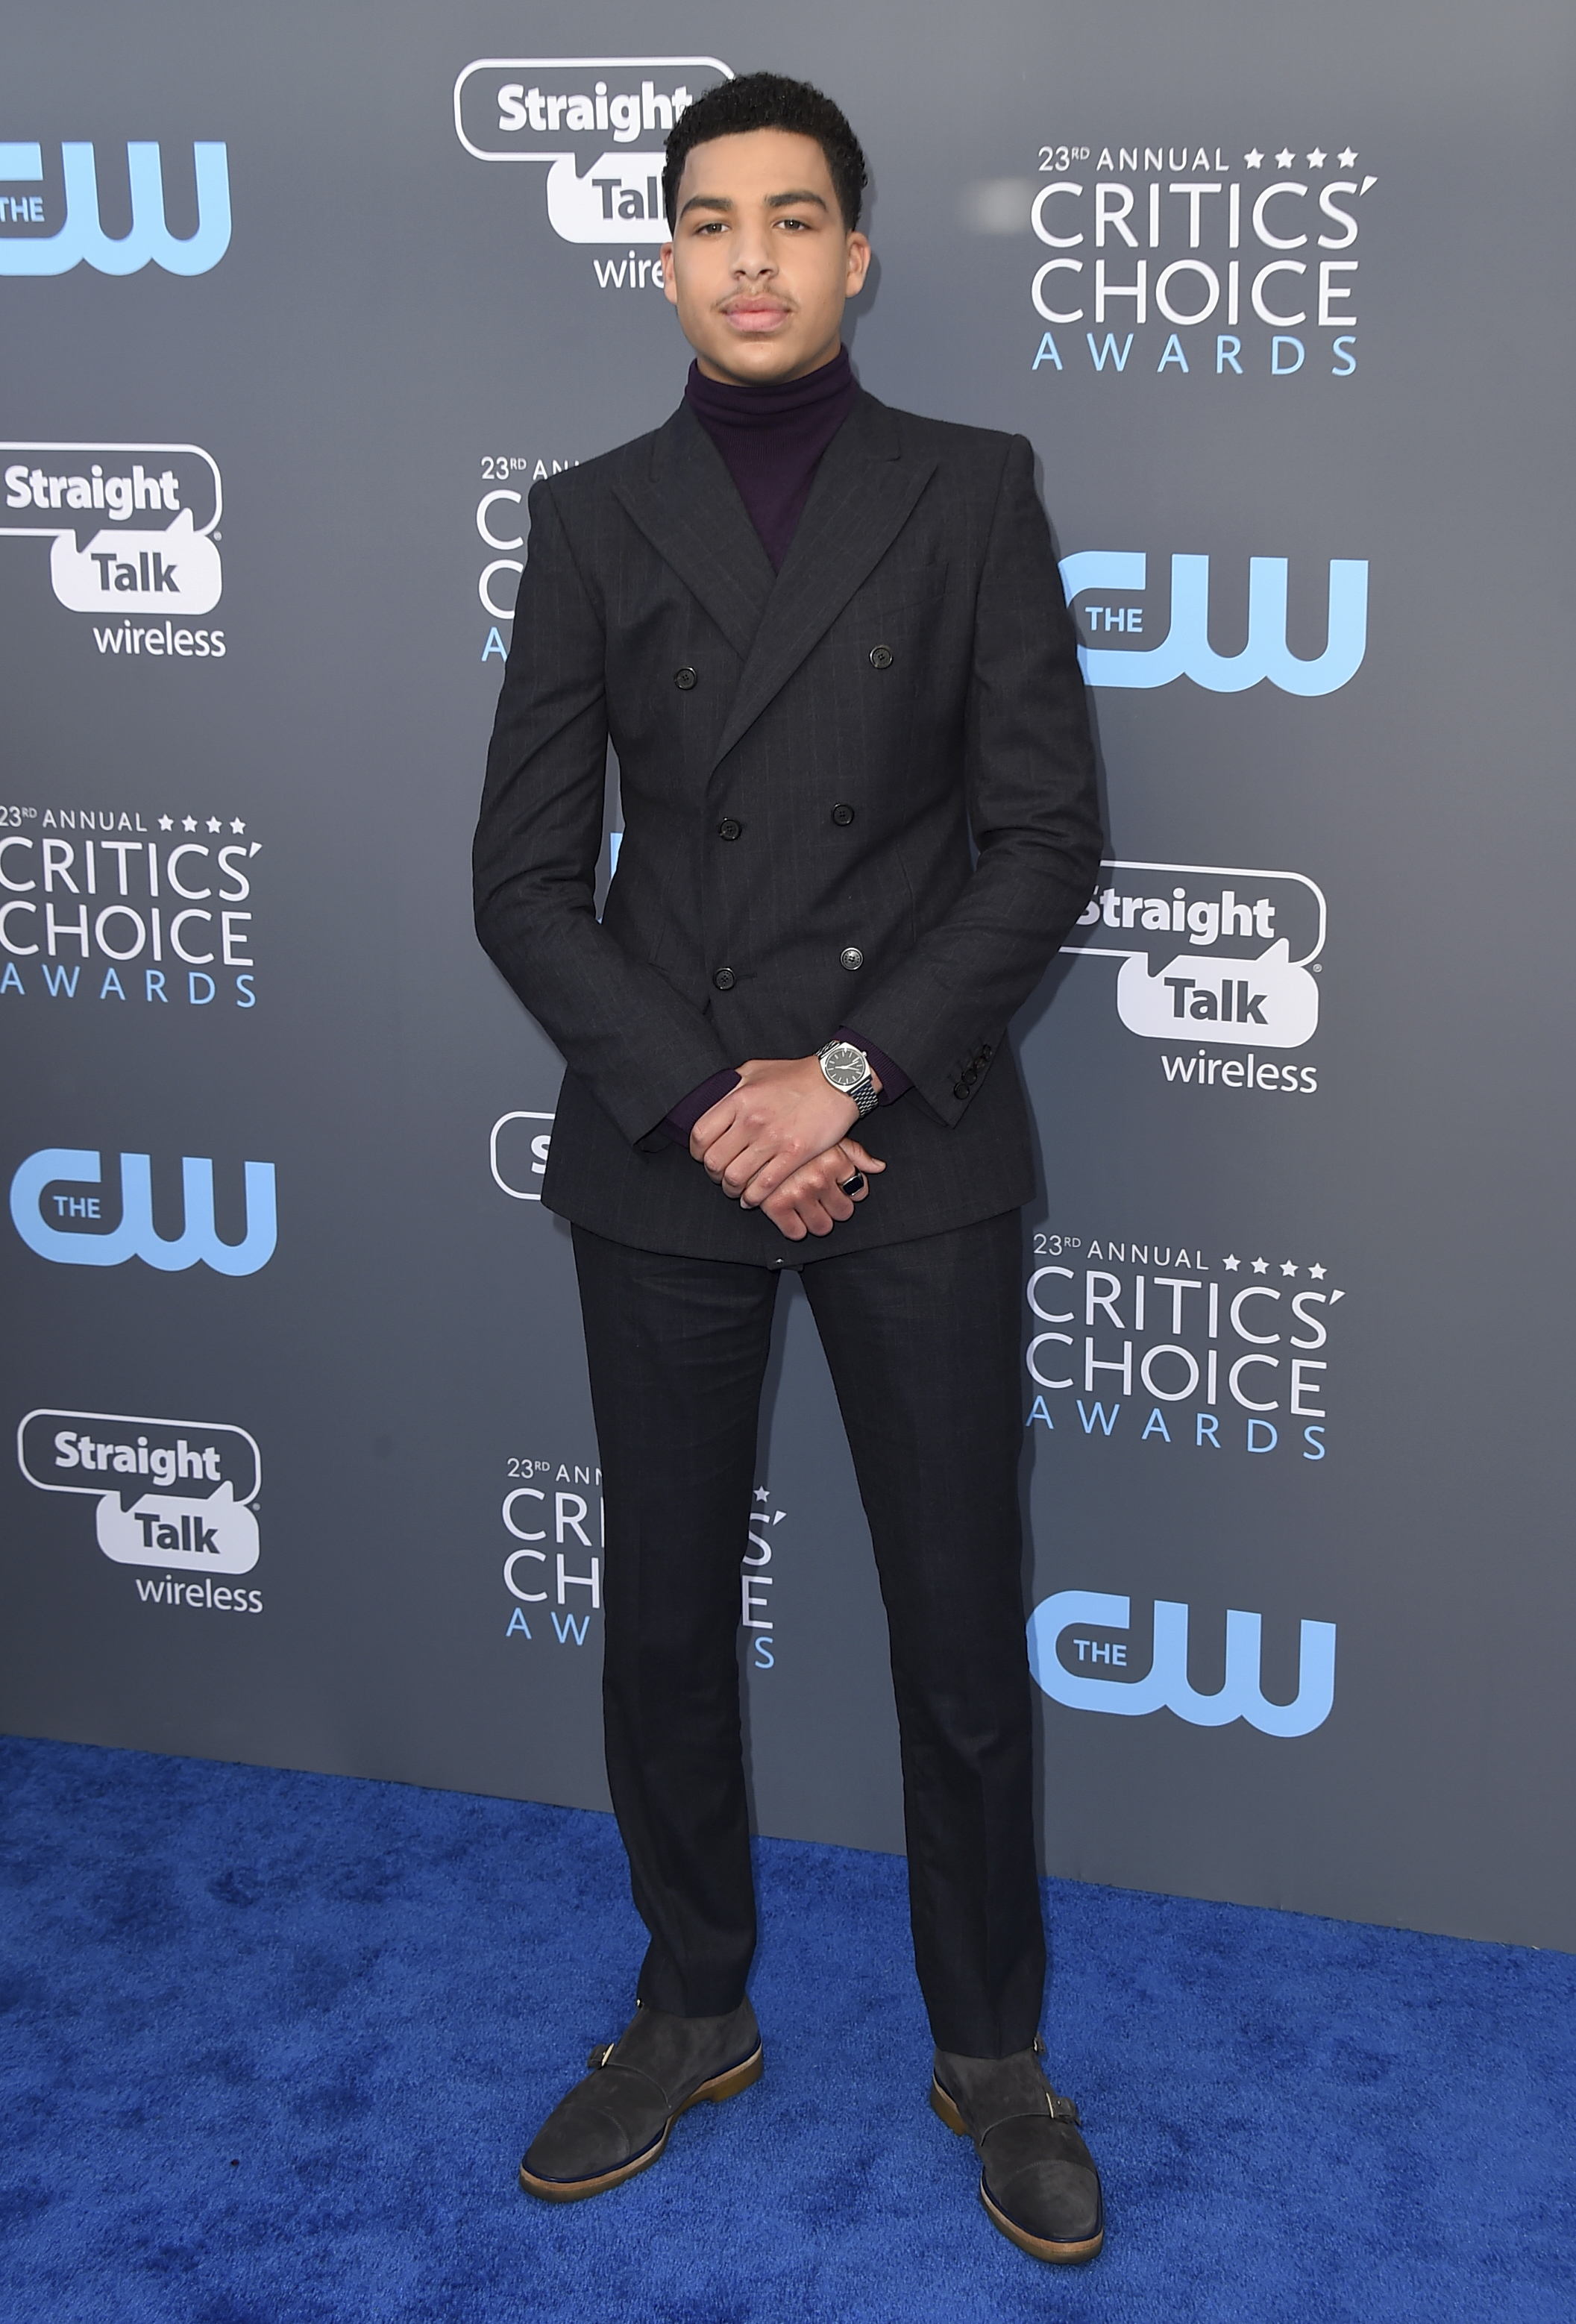 <div class='meta'><div class='origin-logo' data-origin='AP'></div><span class='caption-text' data-credit='Jordan Strauss/Invision/AP'>Marcus Scribner arrives at the 23rd annual Critics' Choice Awards at the Barker Hangar on Thursday, Jan. 11, 2018, in Santa Monica, Calif.</span></div>